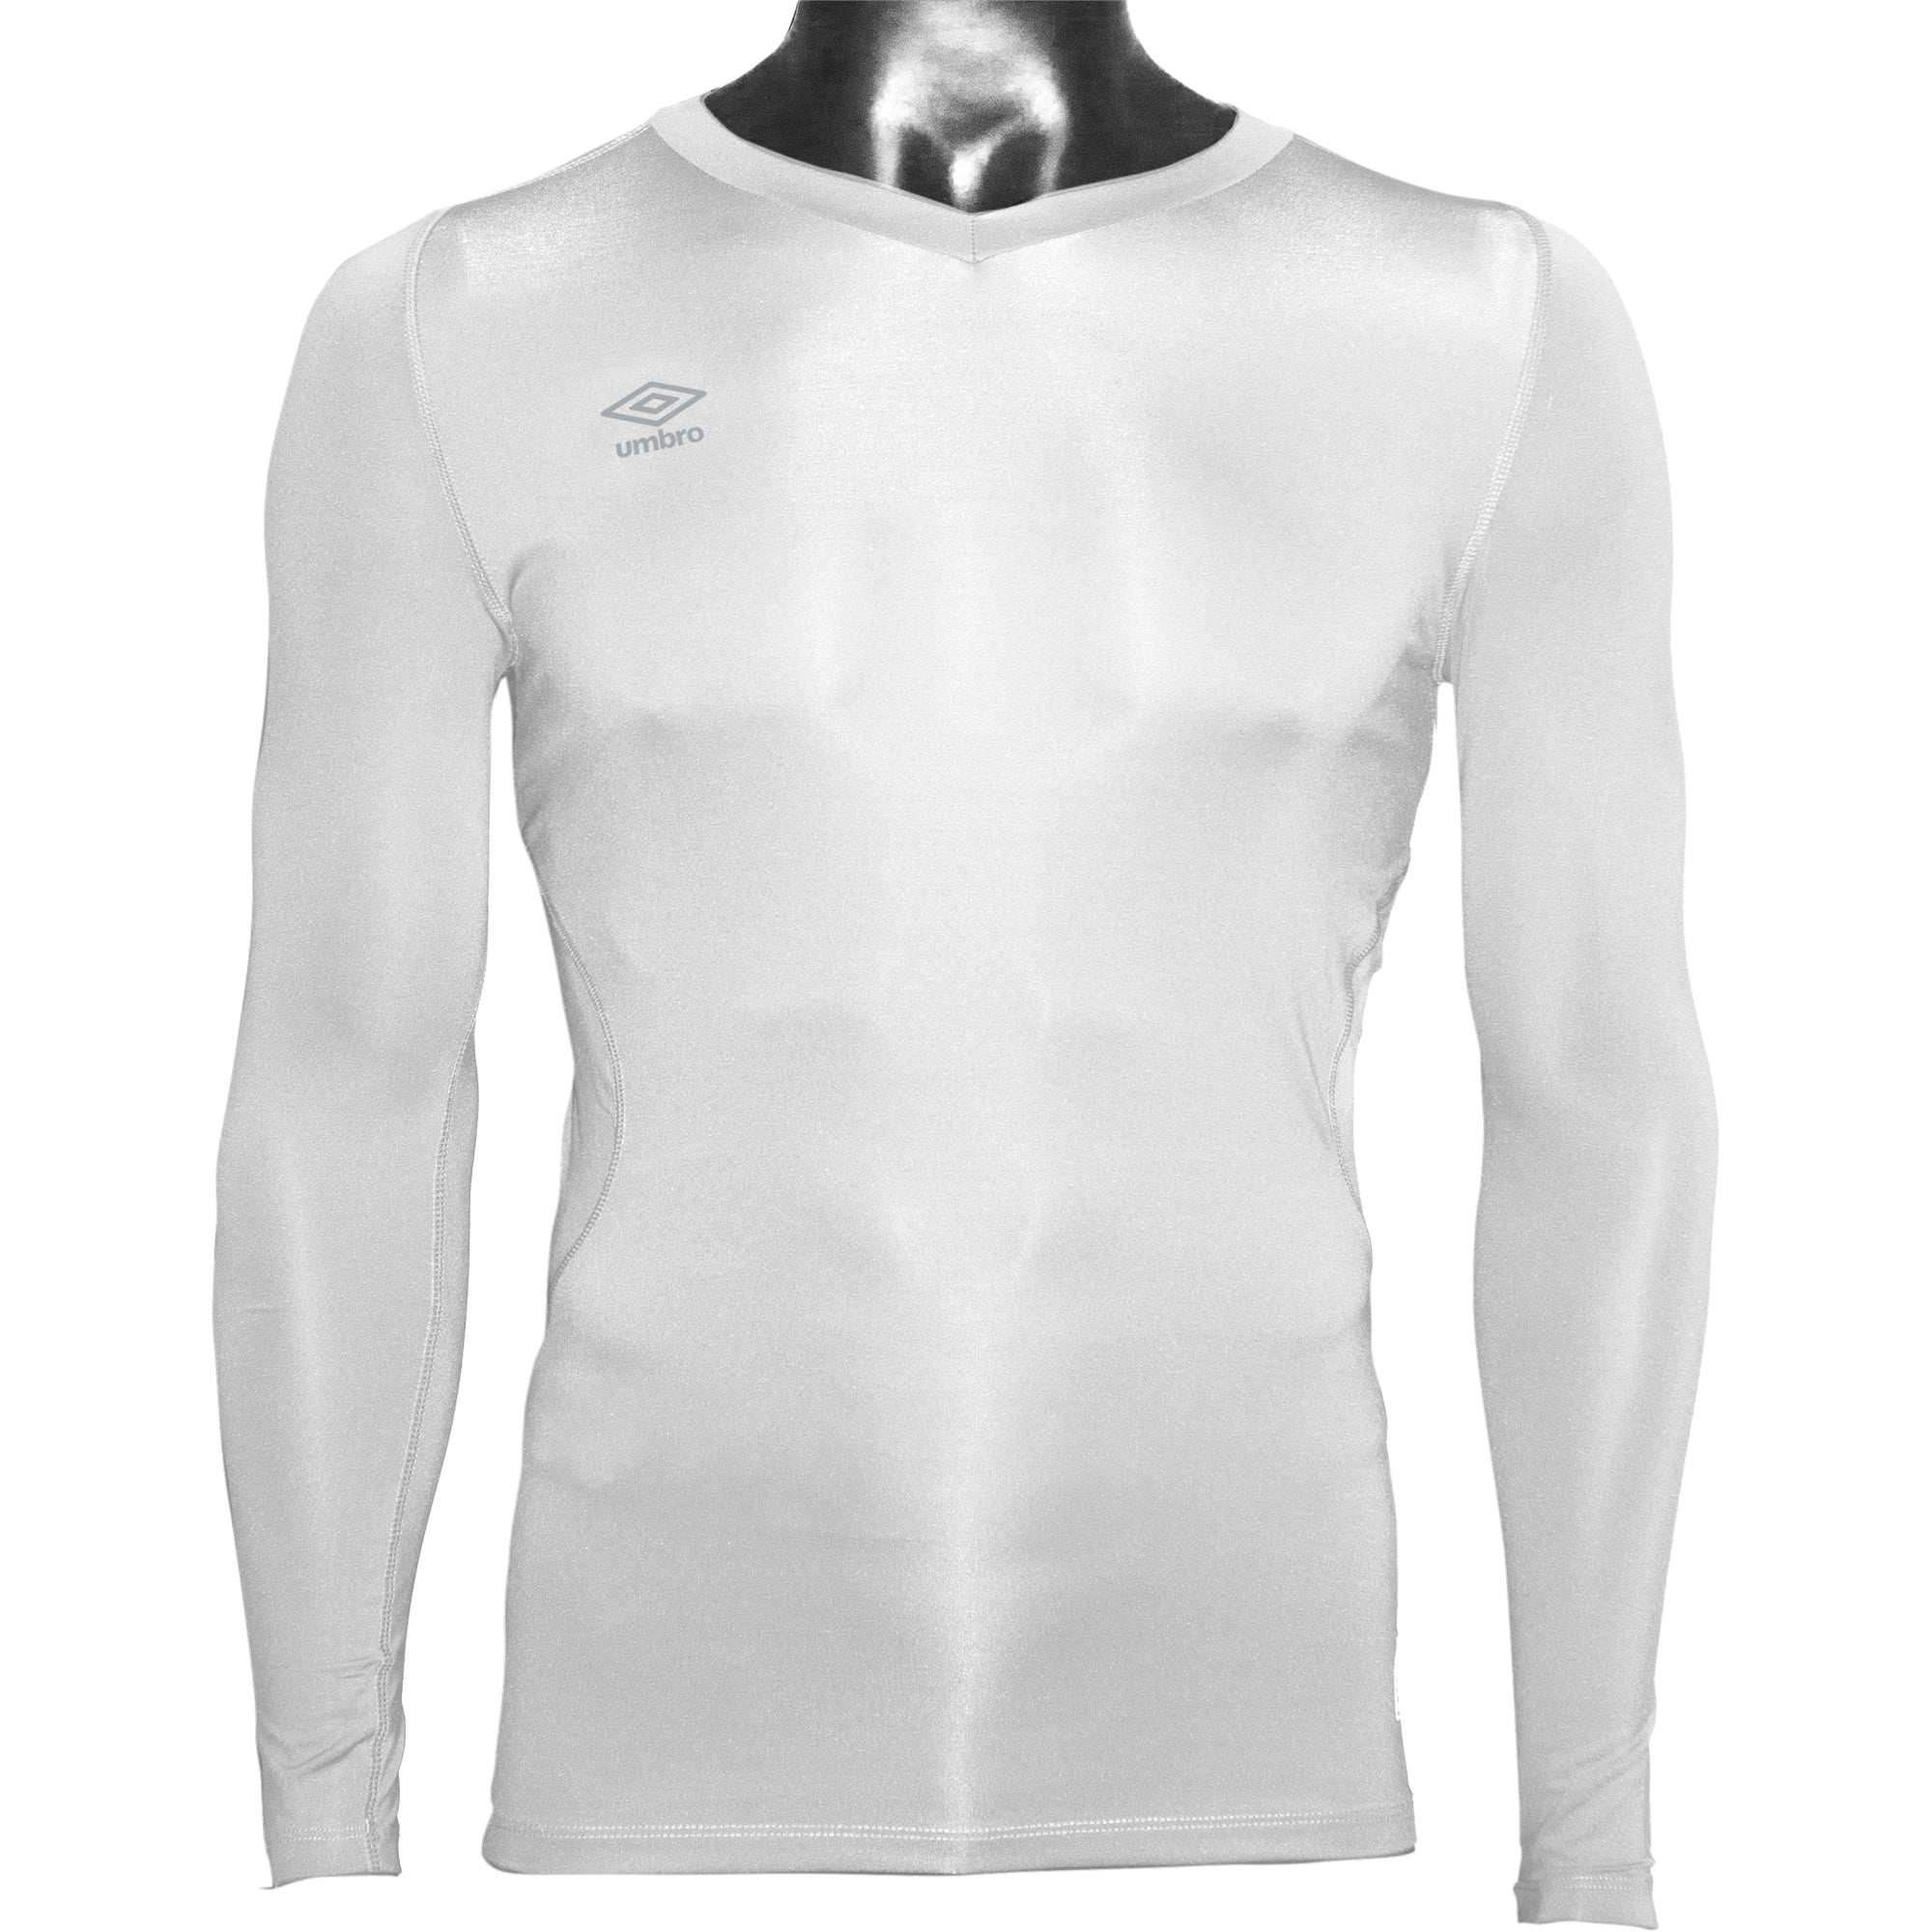 Umbro Elite V Neck baselayer in white with reflective stacked diamond logo on right chest